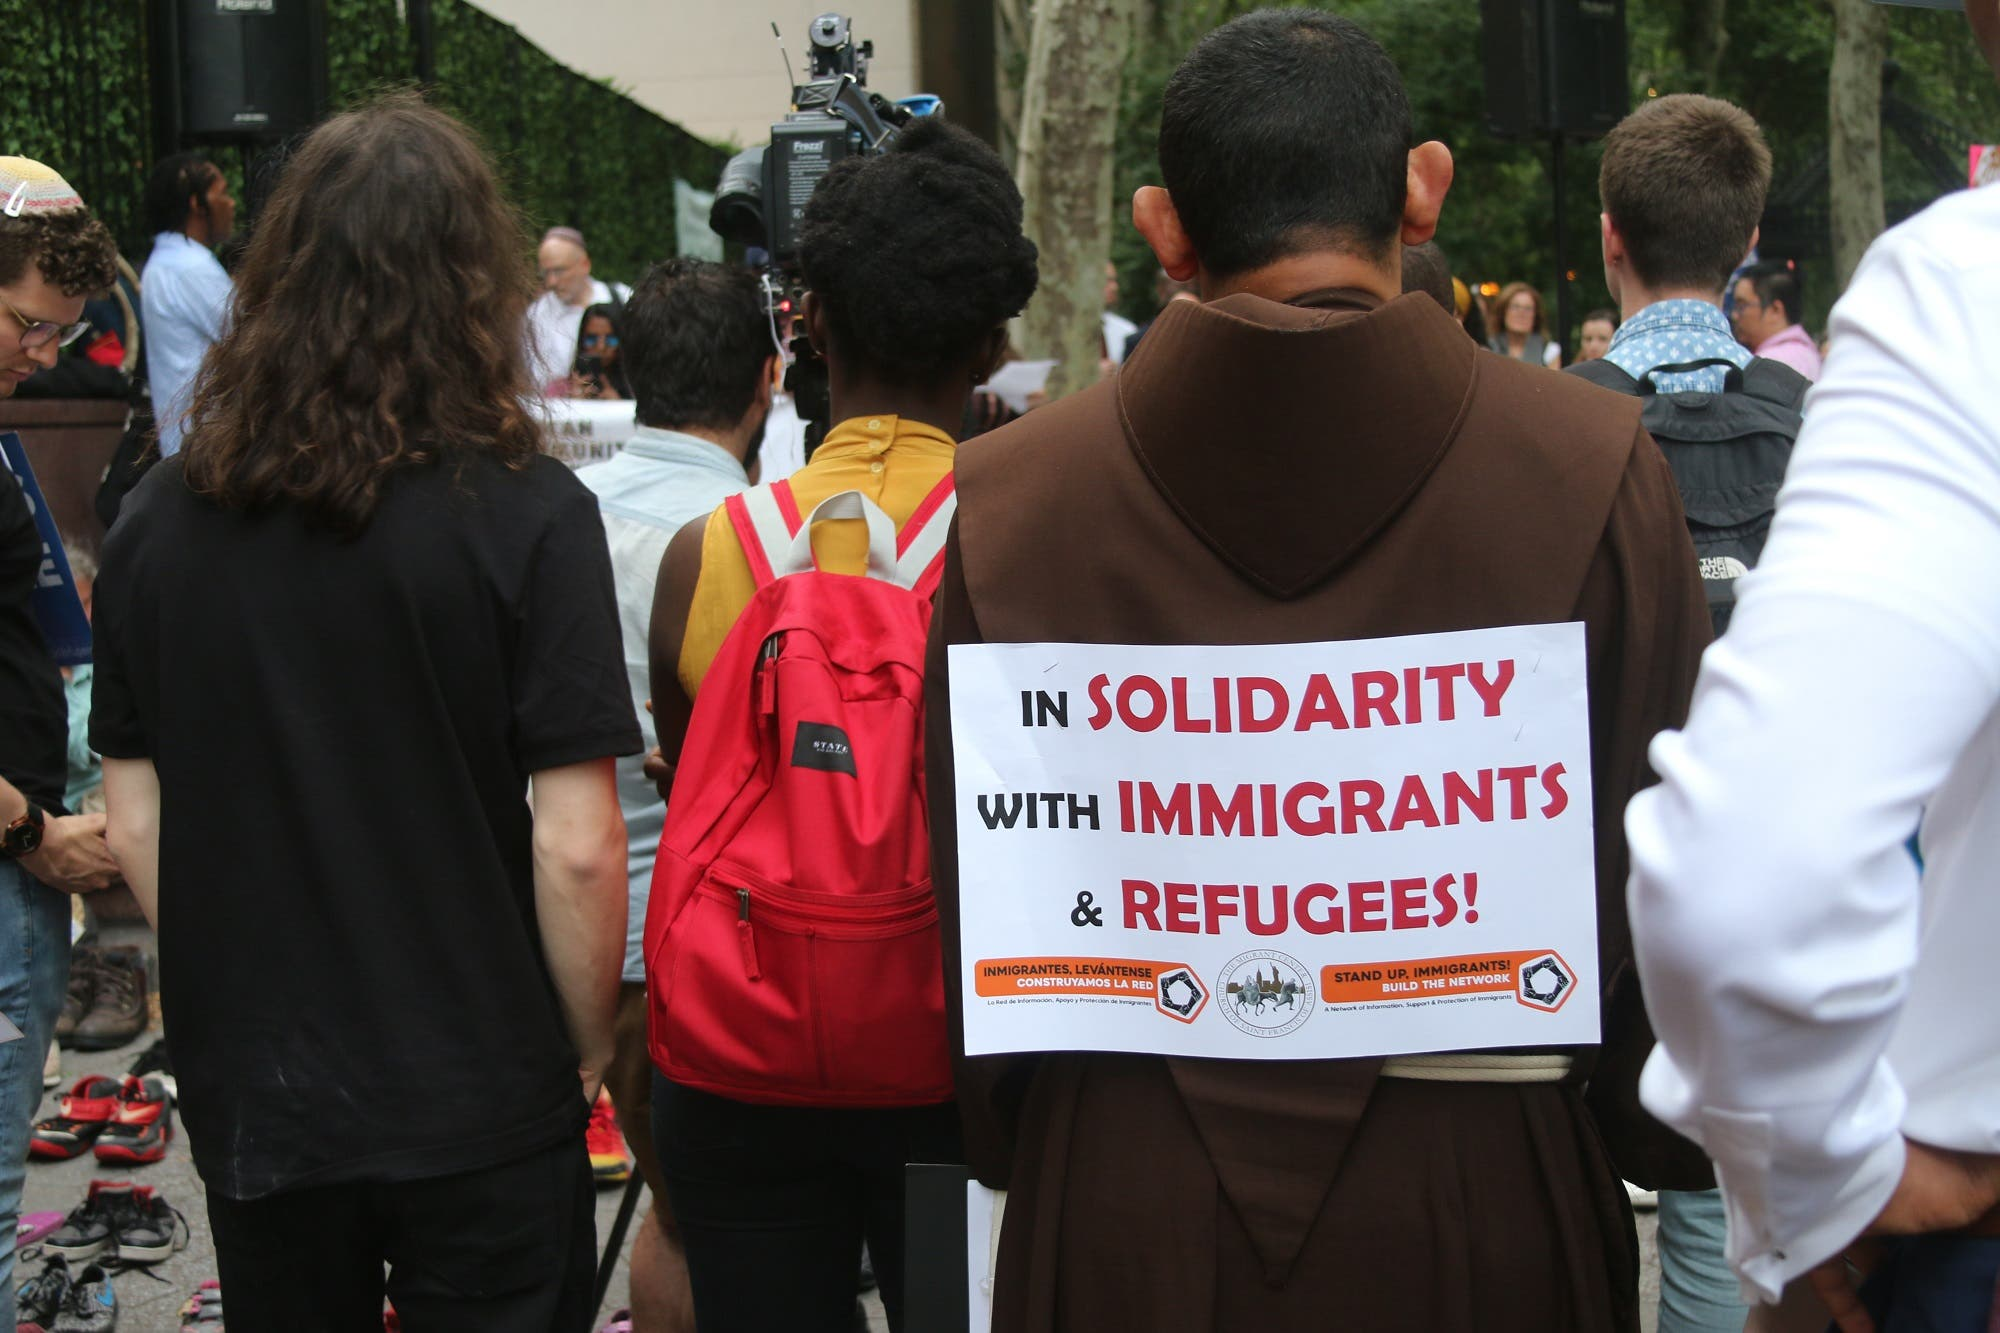 World Refugee Day seemed overshadowed by the immigration crisis taking place at the American-Mexican border. (Supplied)